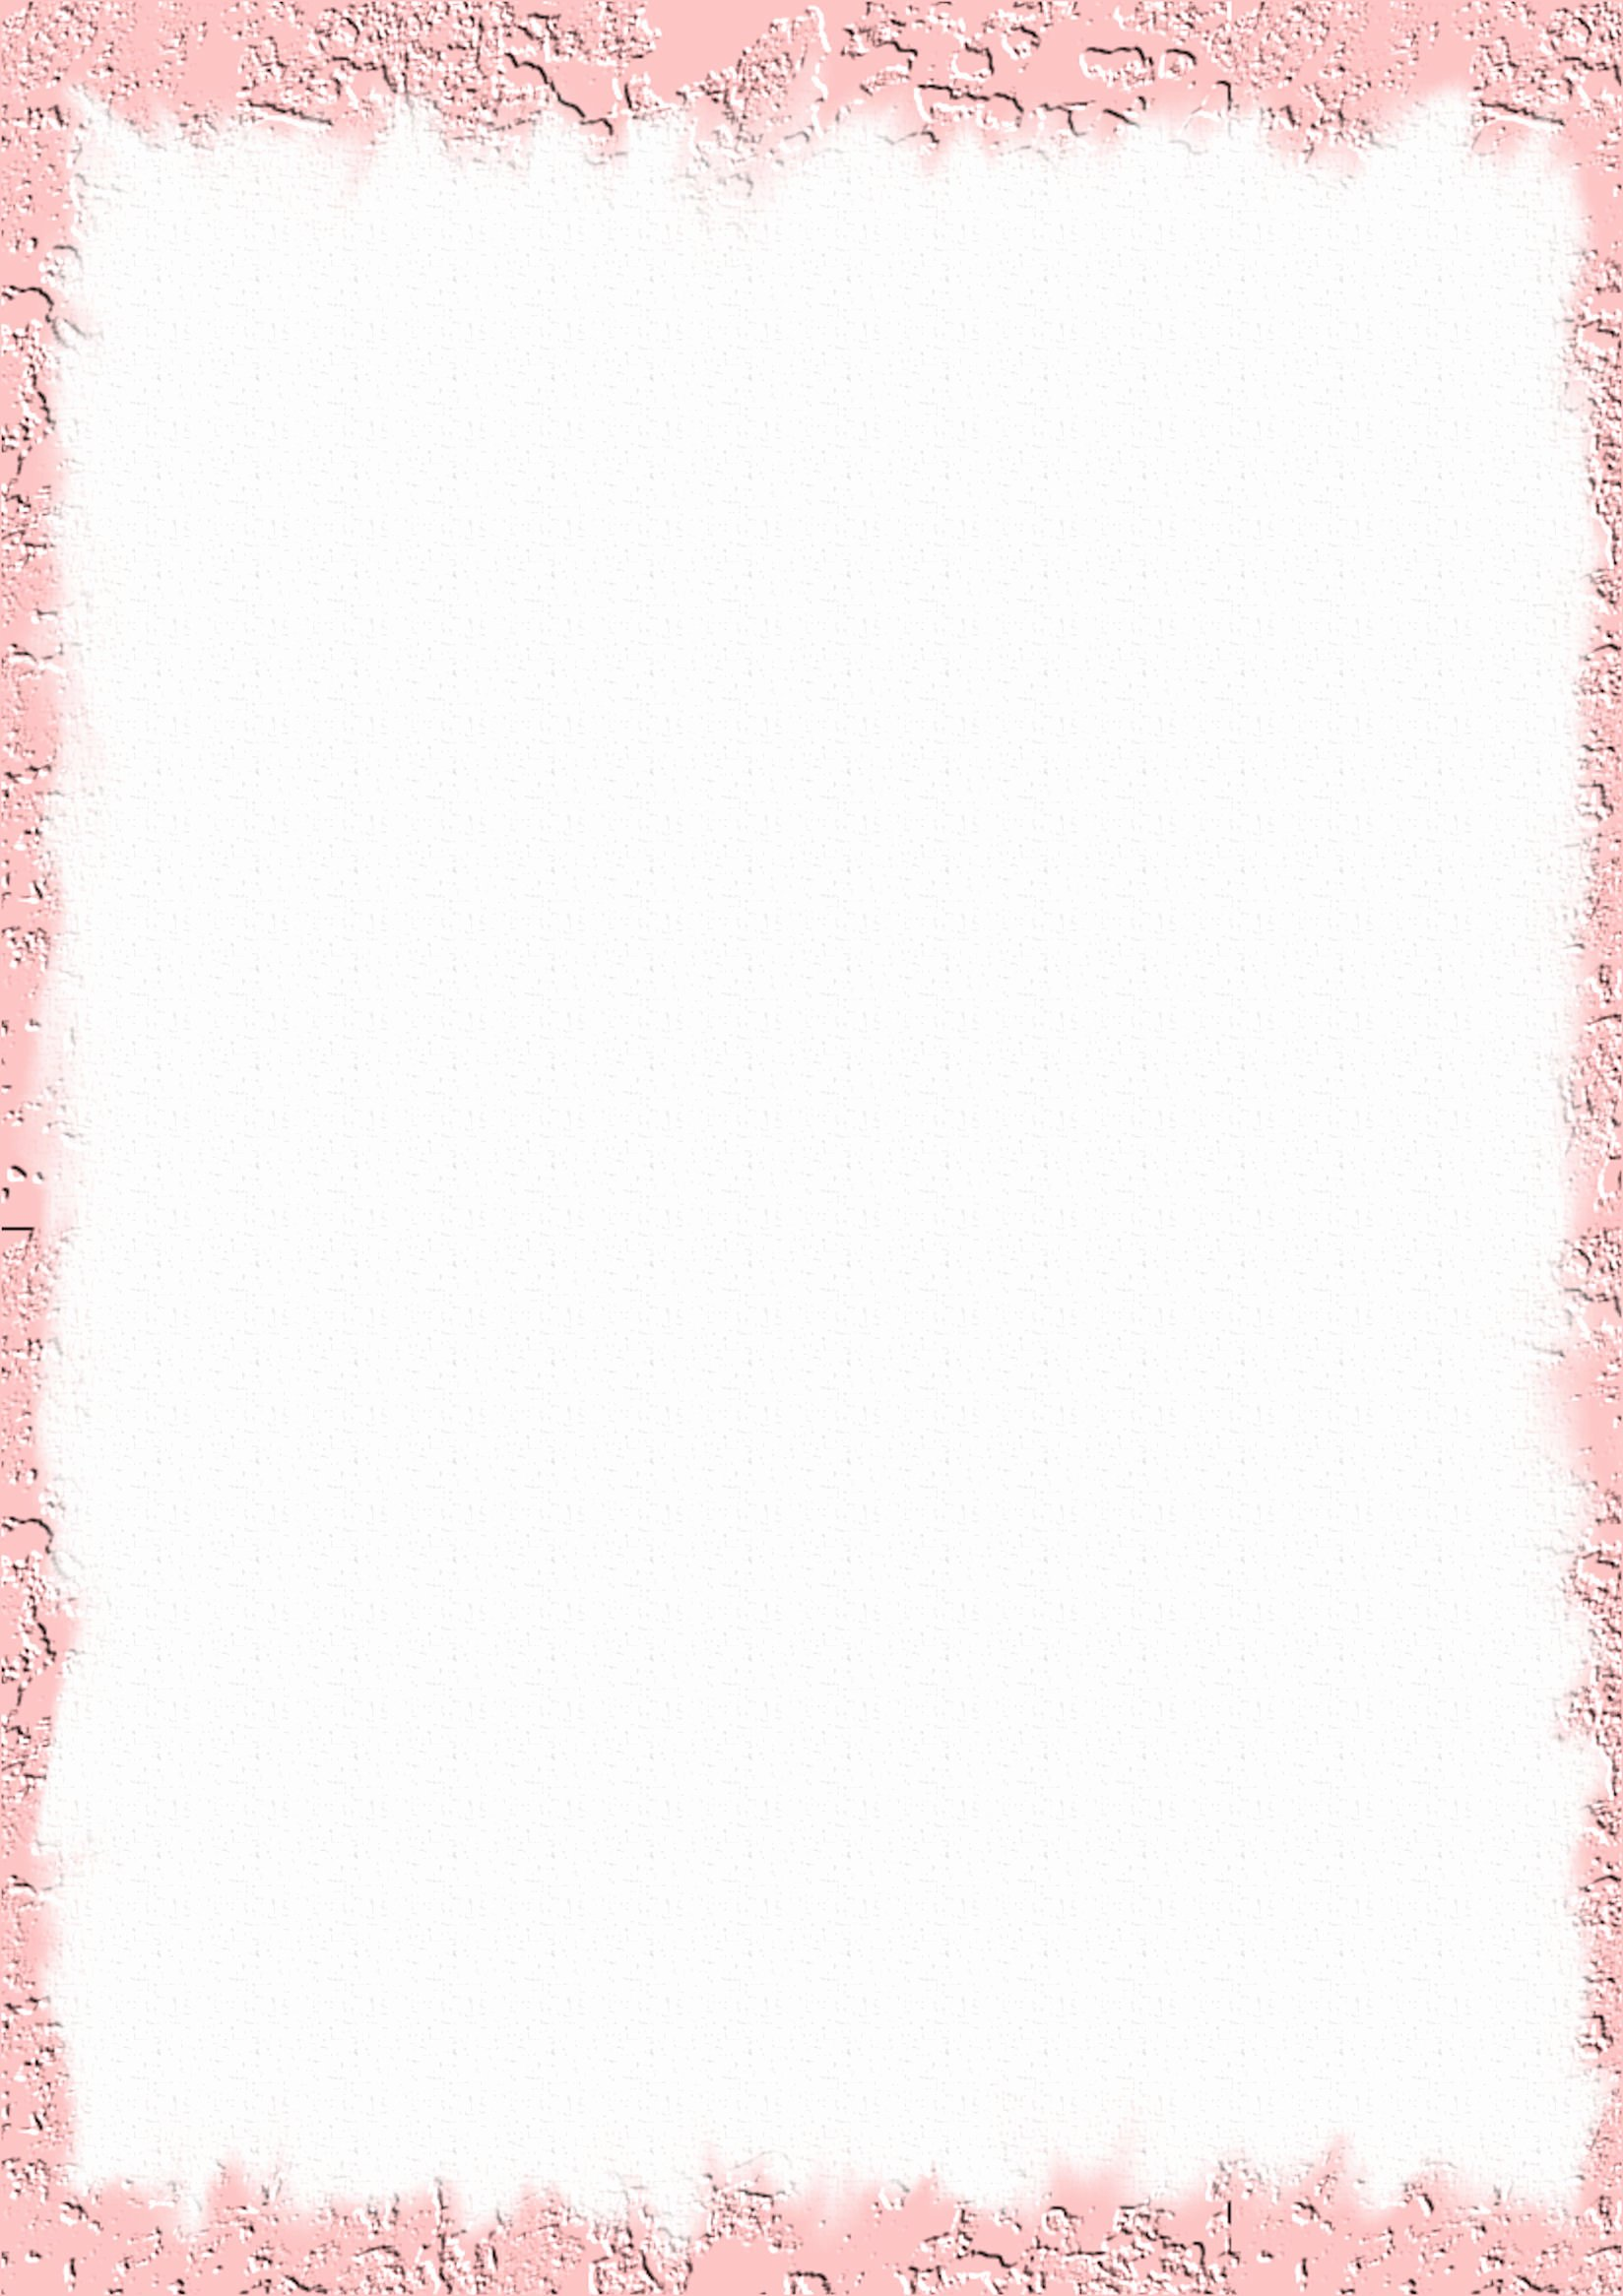 Free Printable Stationery Template New Free A4 Size Textured Stationery Page 1